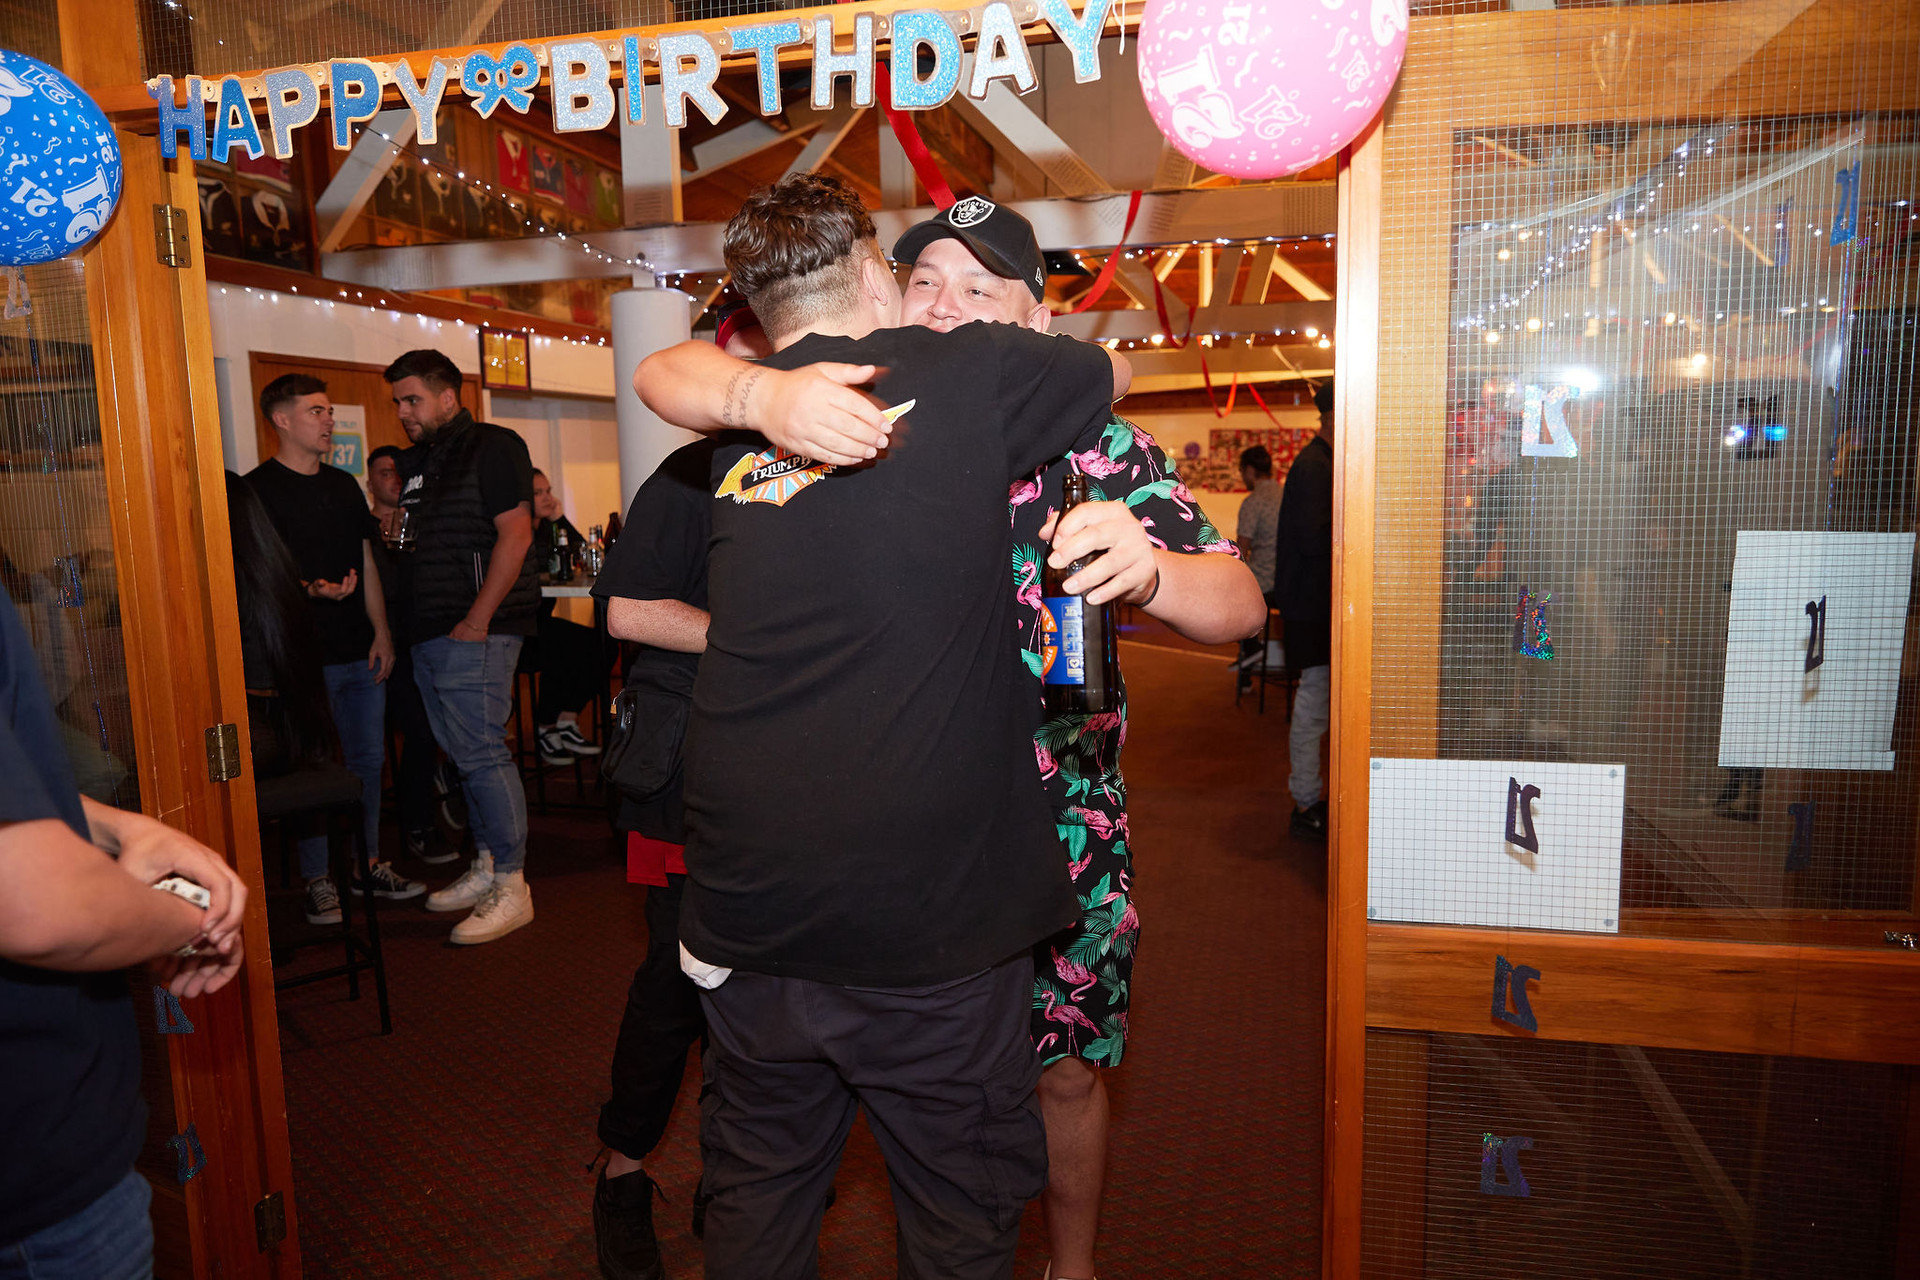 Andrew's21stBirthdayParty-maydream-auckl